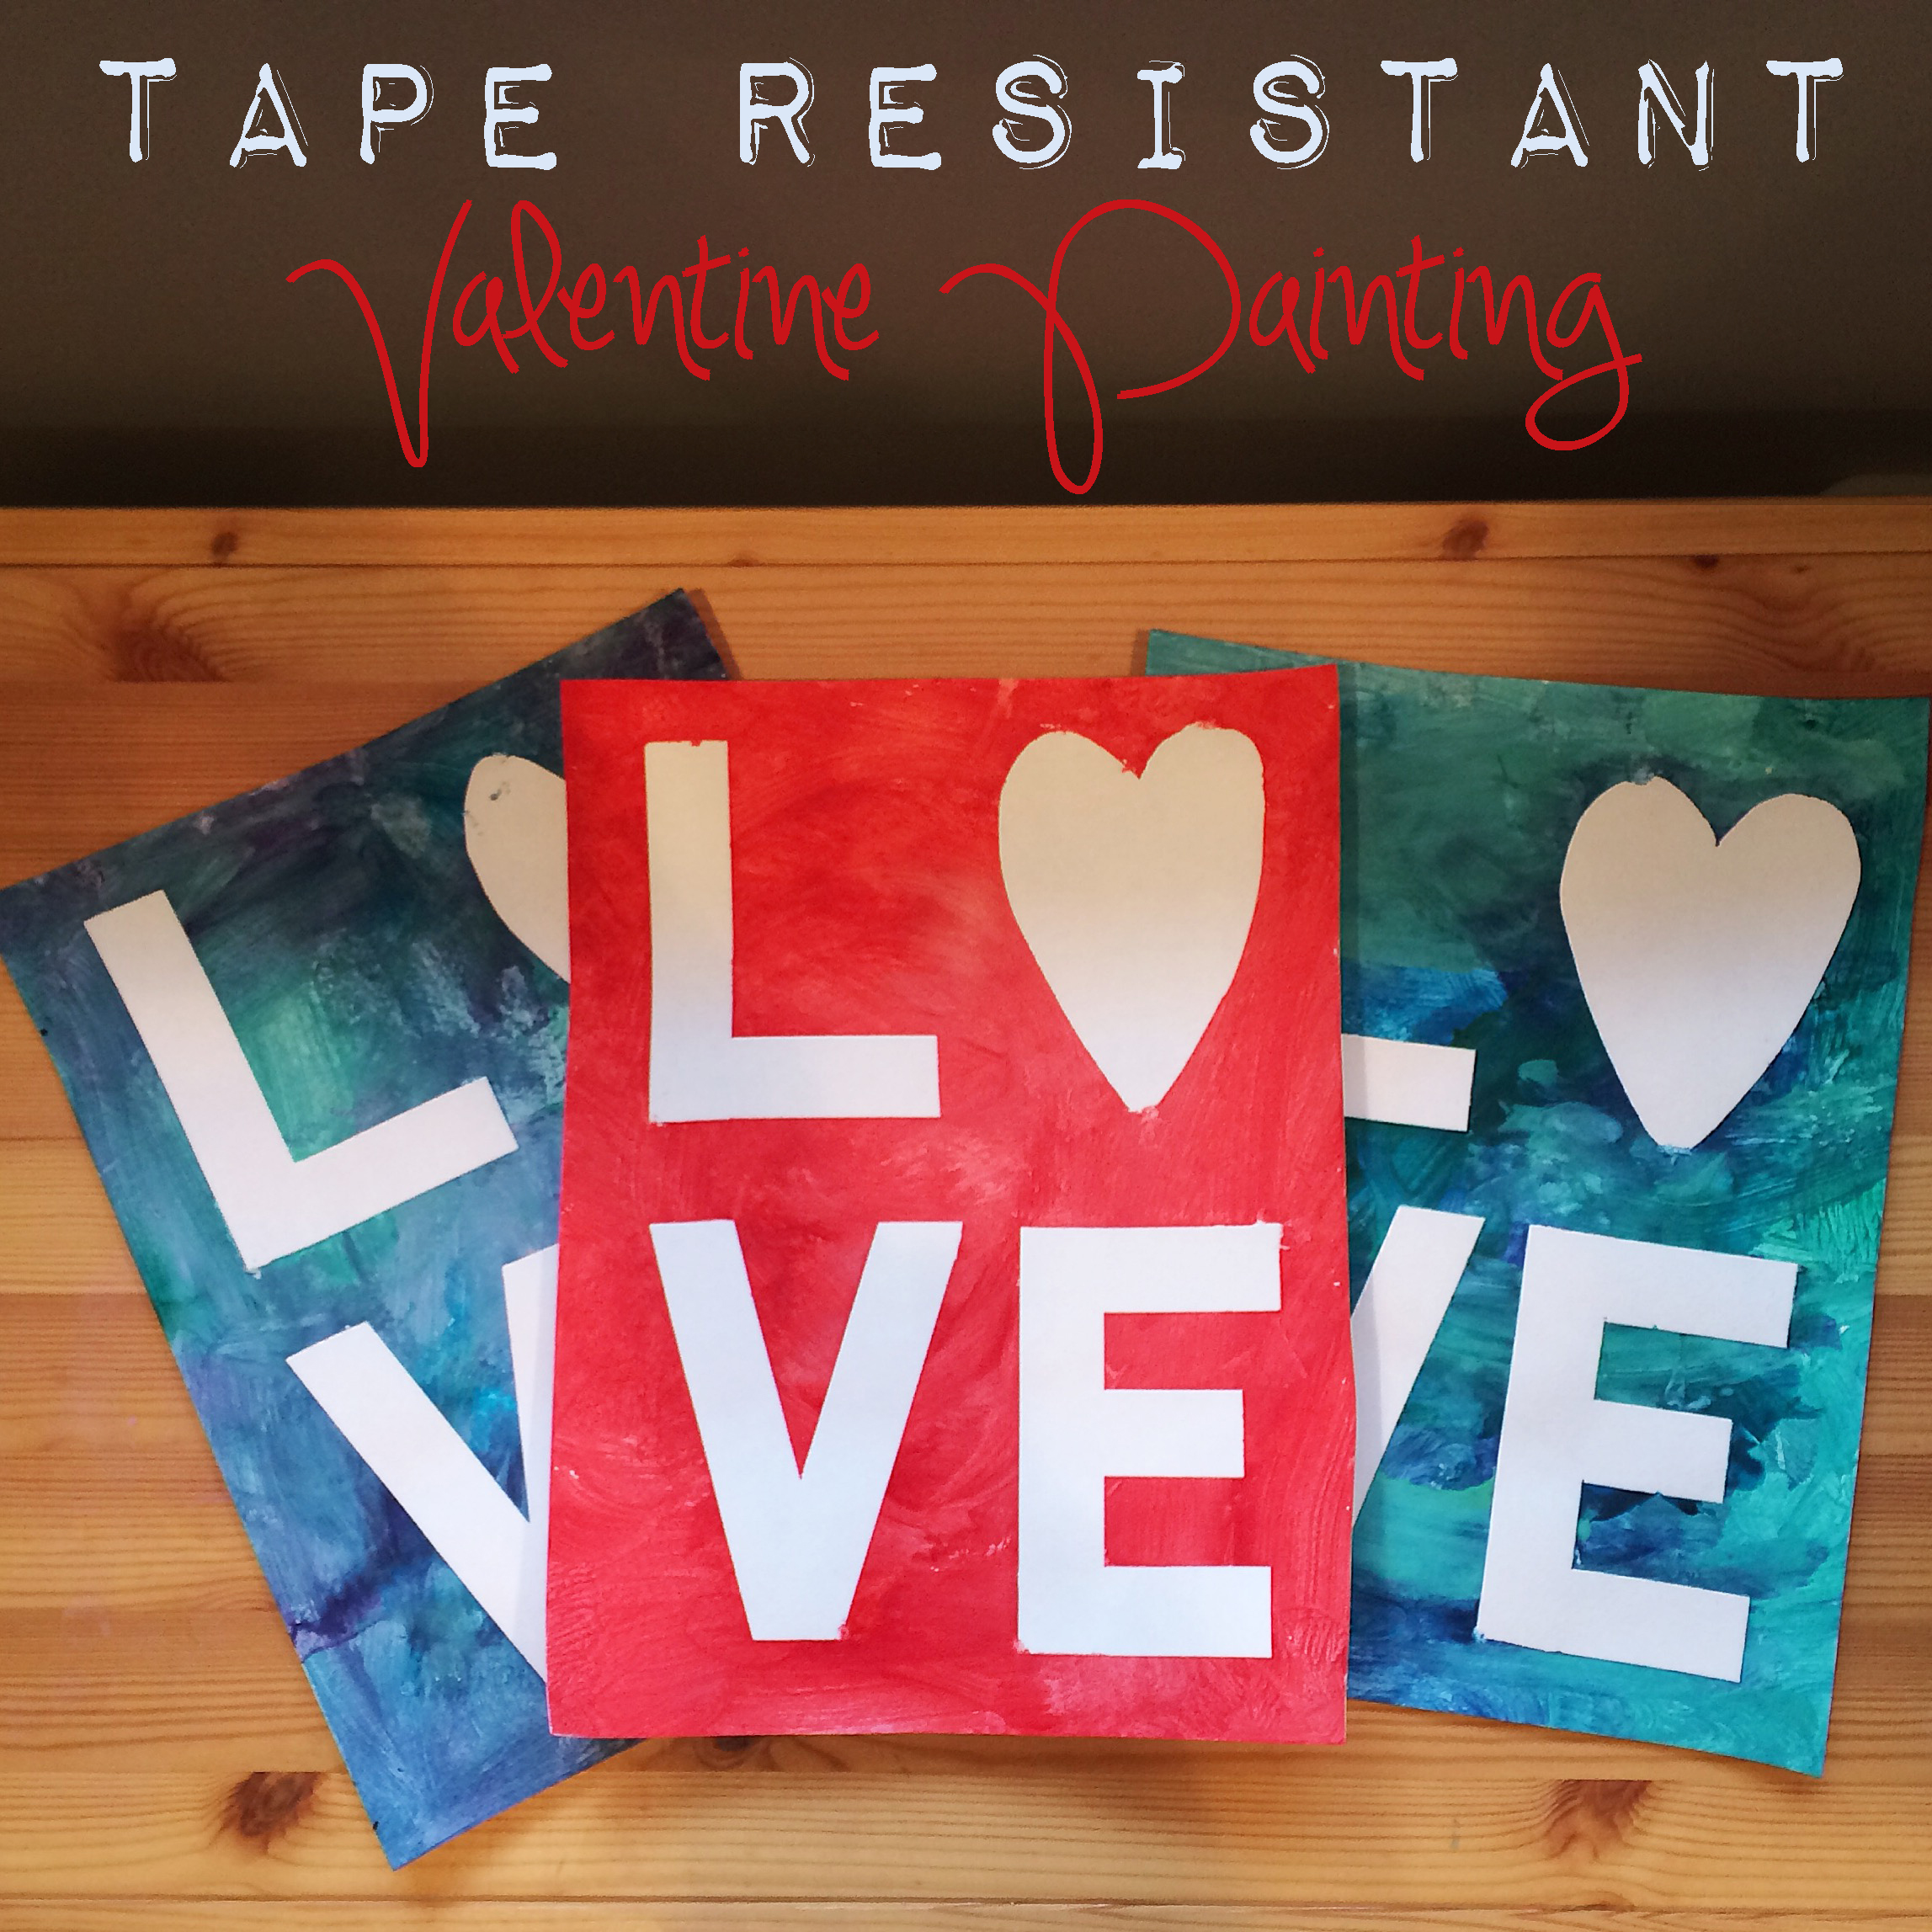 Tape Resistant Valentine Painting